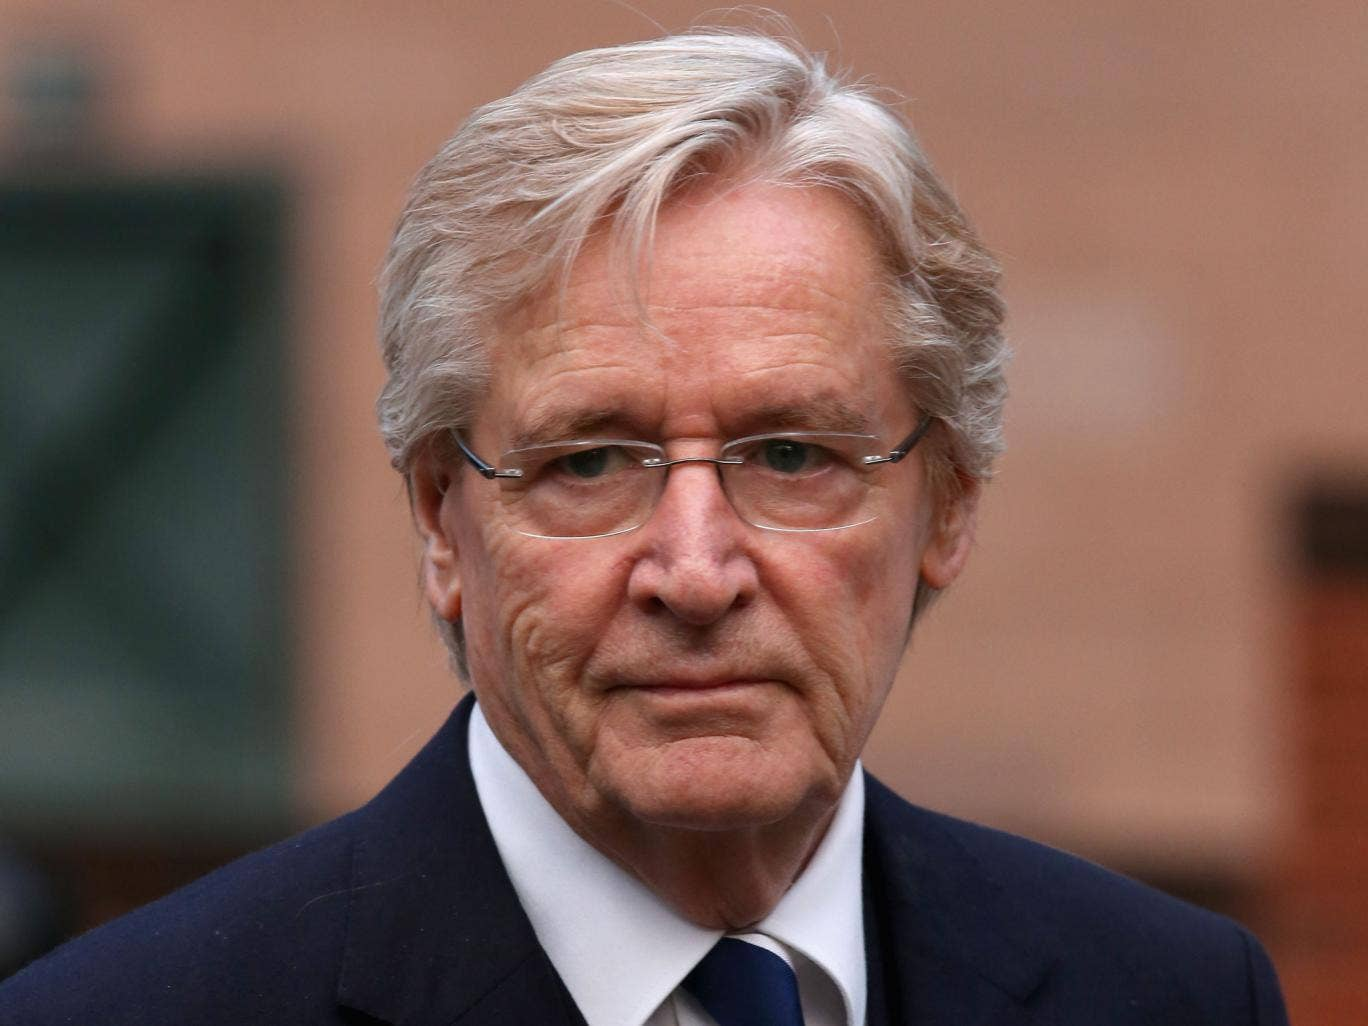 Coronation Street actor William Roache arrives at Preston Crown Court for the fourth day of his trial of historical sexual offence allegations on January 17, 2014 in Preston, Lancashire. Coronation Street star Roache who plays the character Ken Barlow on